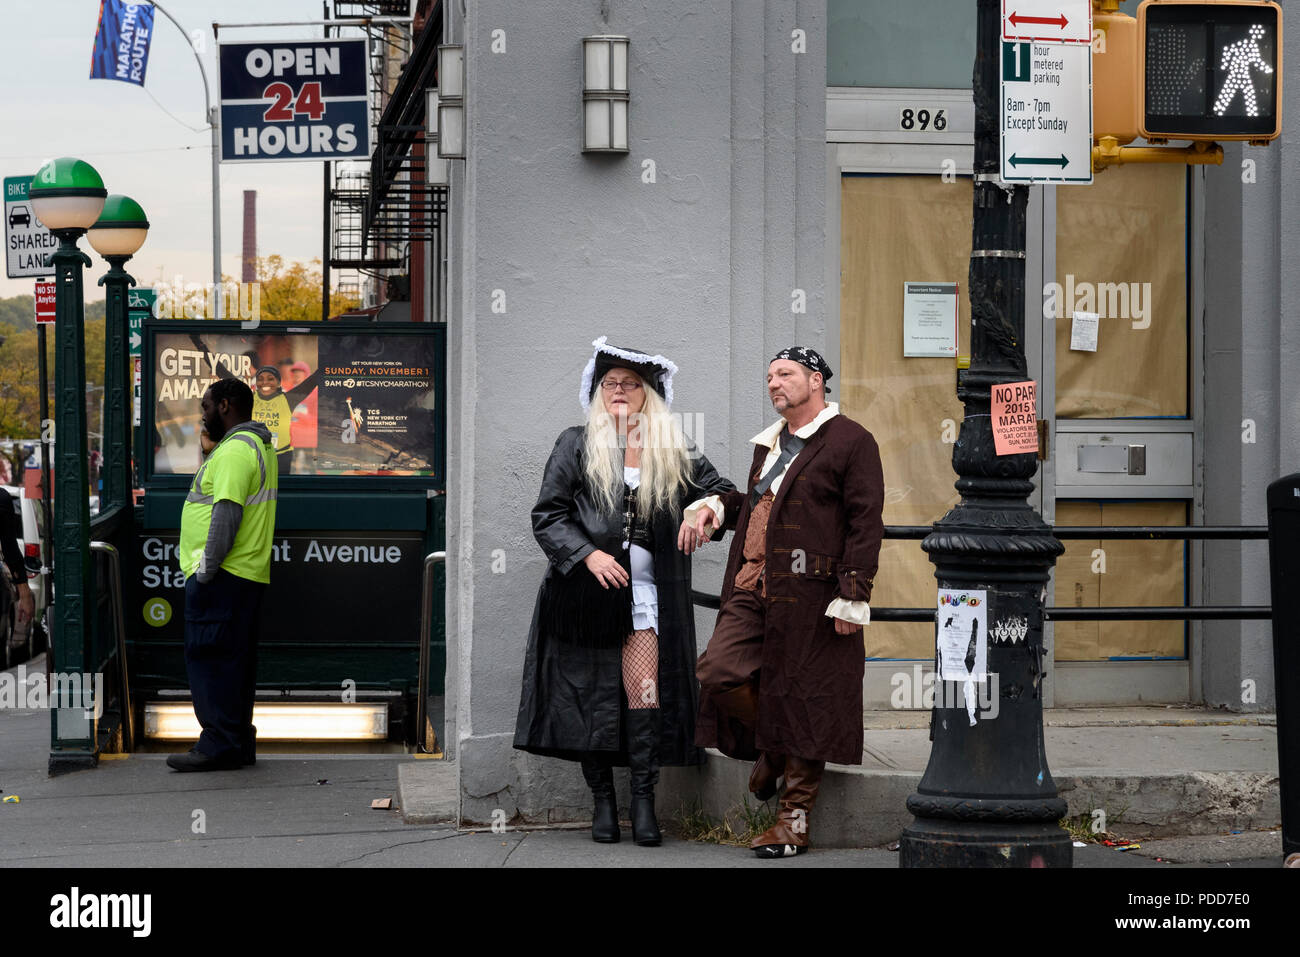 28-10-15, New York, USA.  Brooklyn. Fancy Dress for Halloween. Photo: © Simon Grosset - Stock Image